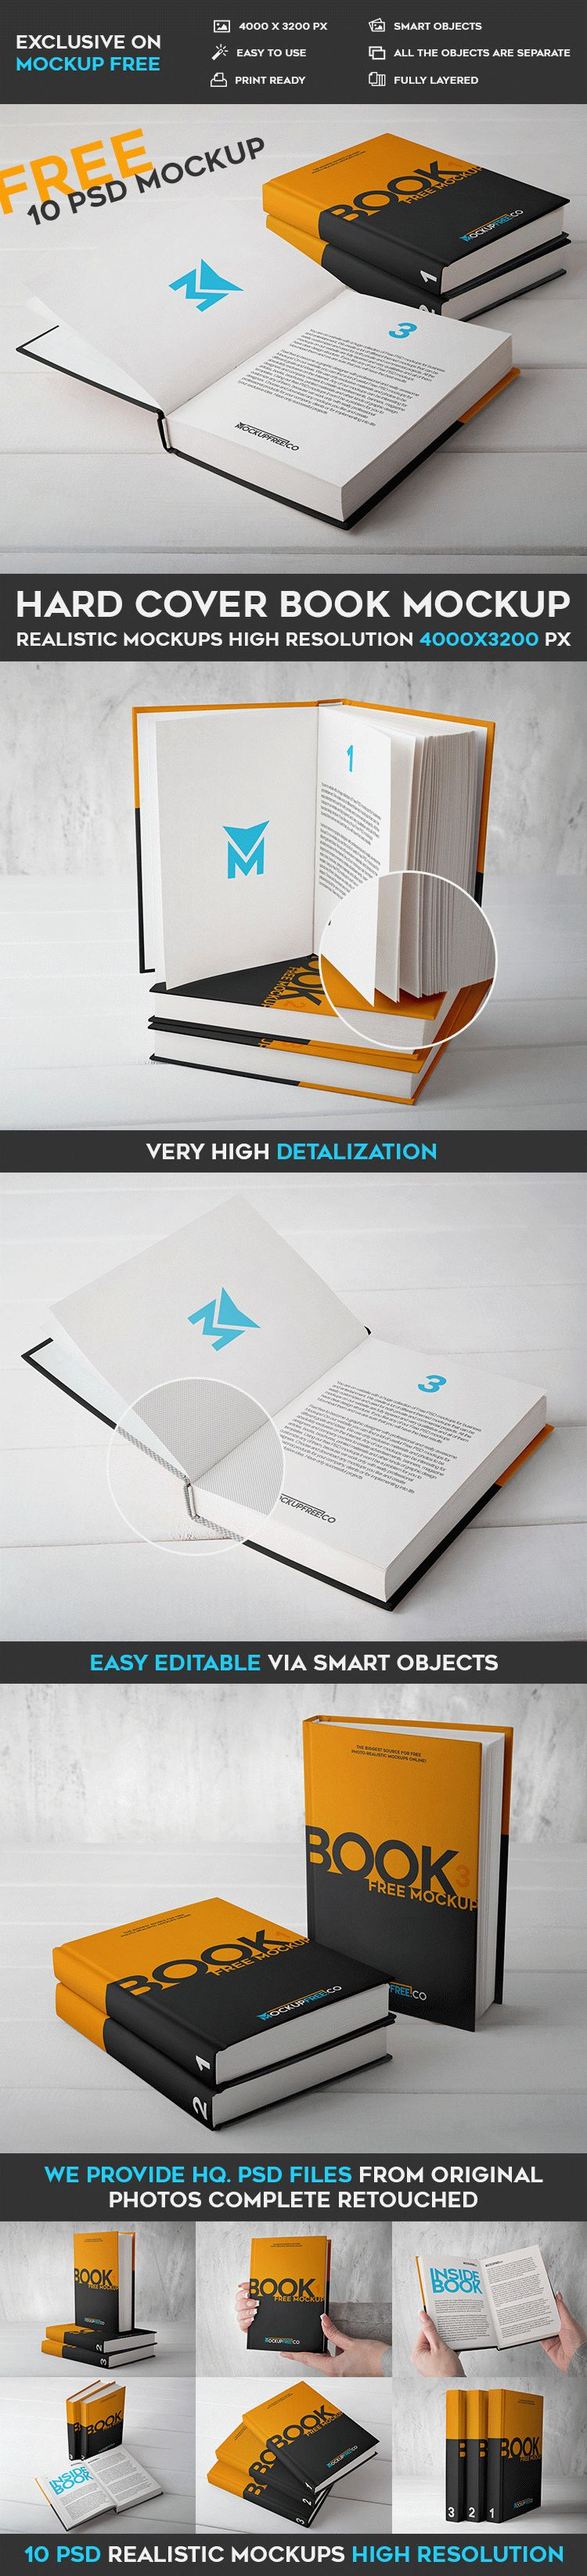 Hard Cover Book - 10 Free PSD Mockups